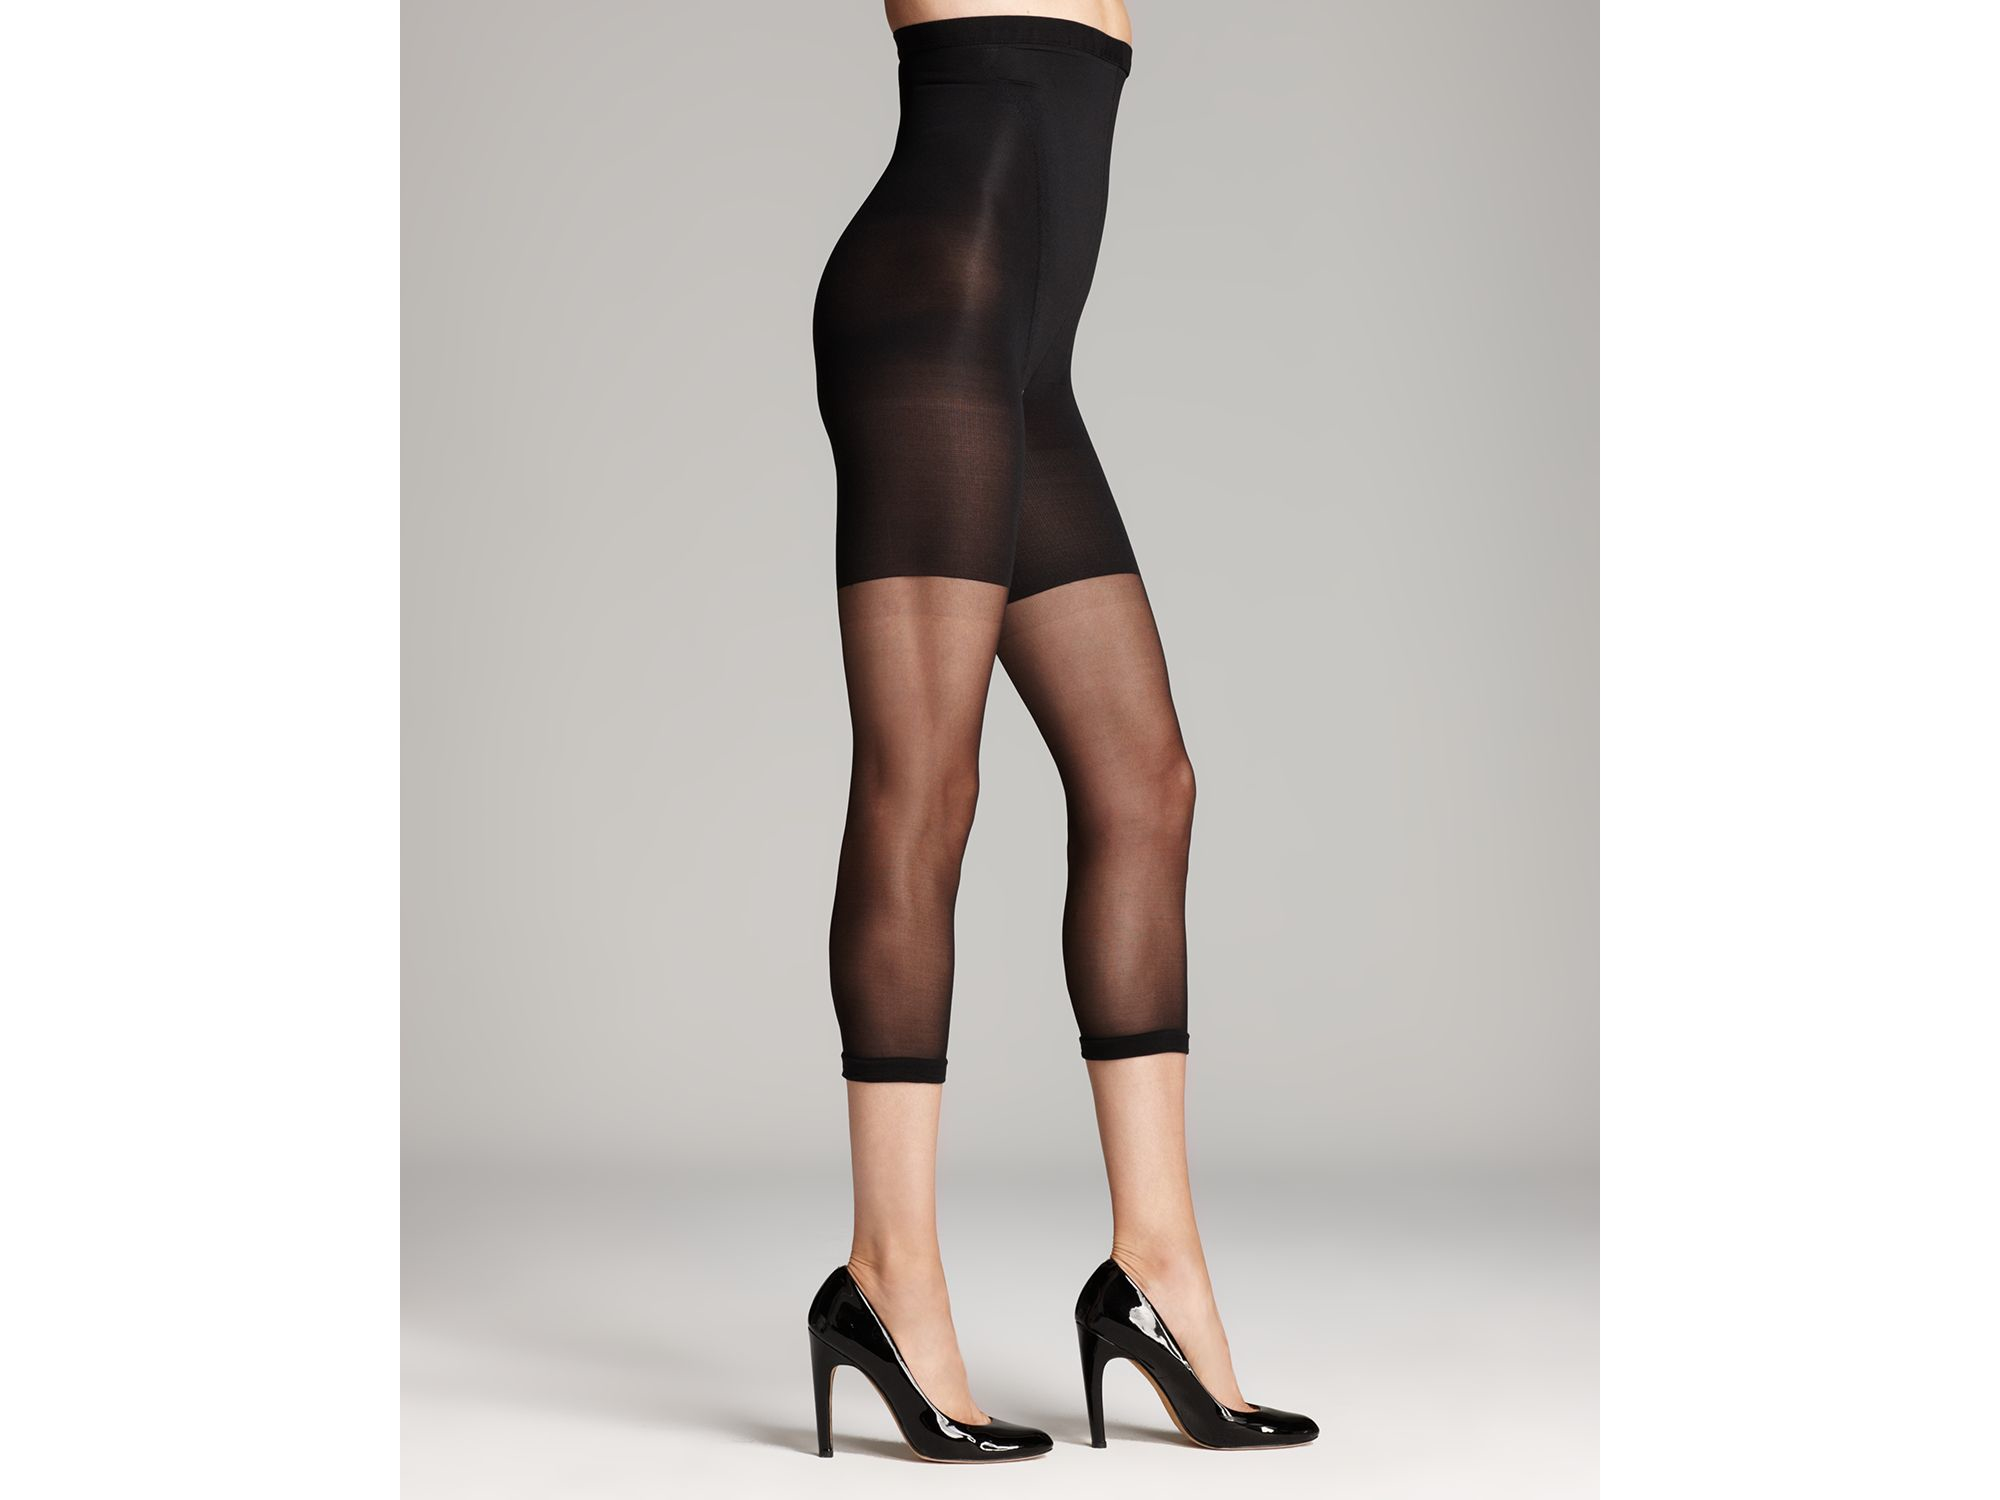 Excellent spanx footless pantyhose were not